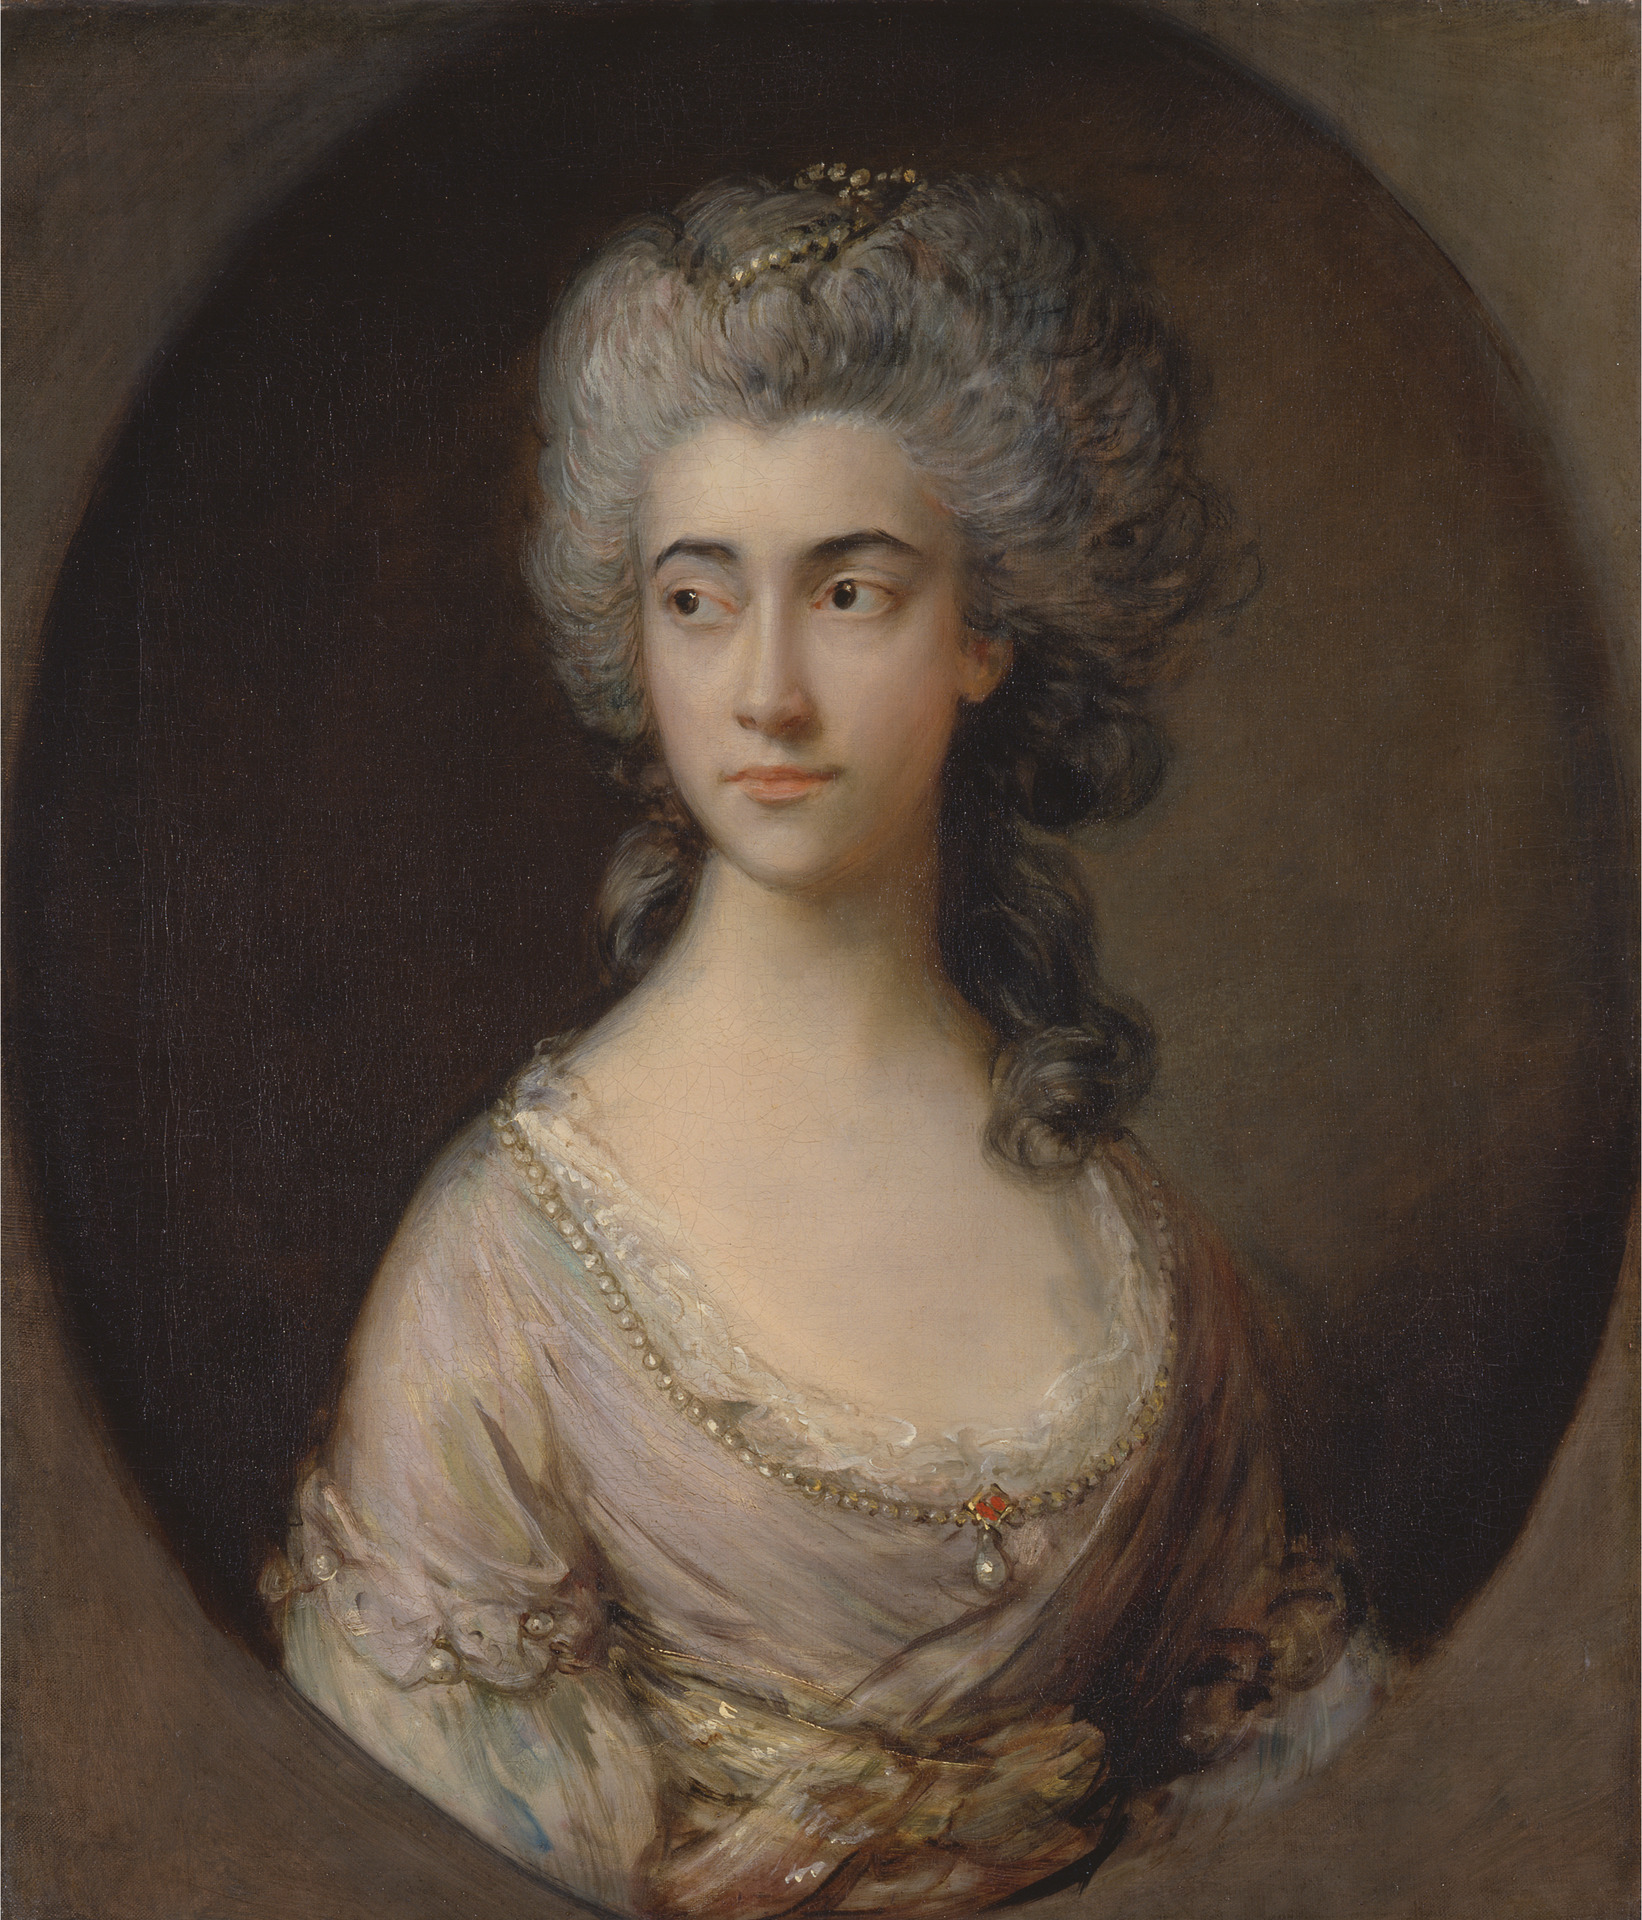 Mary Heberden by Thomas Gainsborough (1727-1788) c.1777 © Yale Center for British Art, Paul Mellon Collection